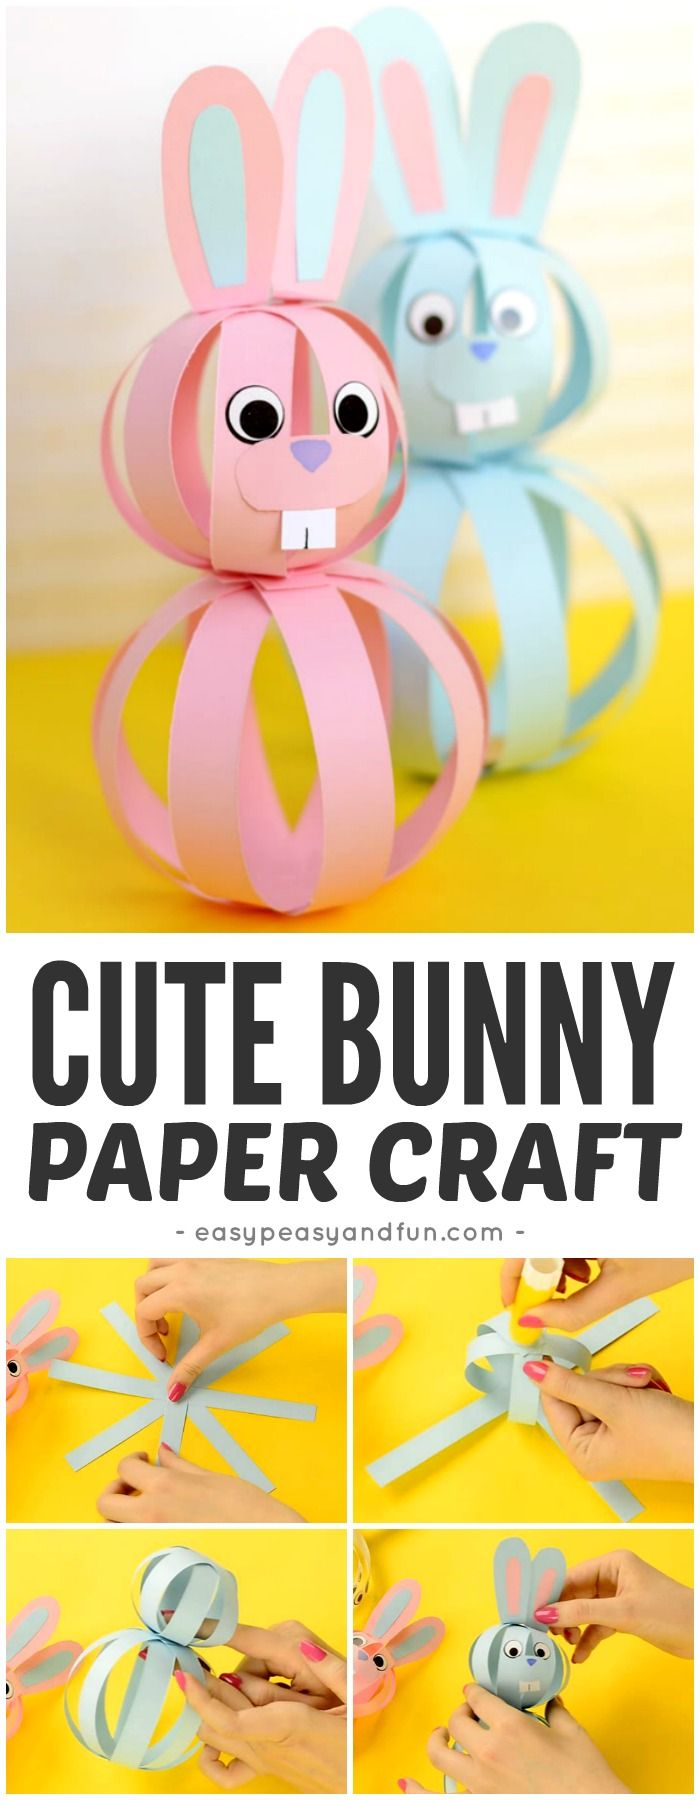 Fun Craft Ideas from afewshortcuts.com 11